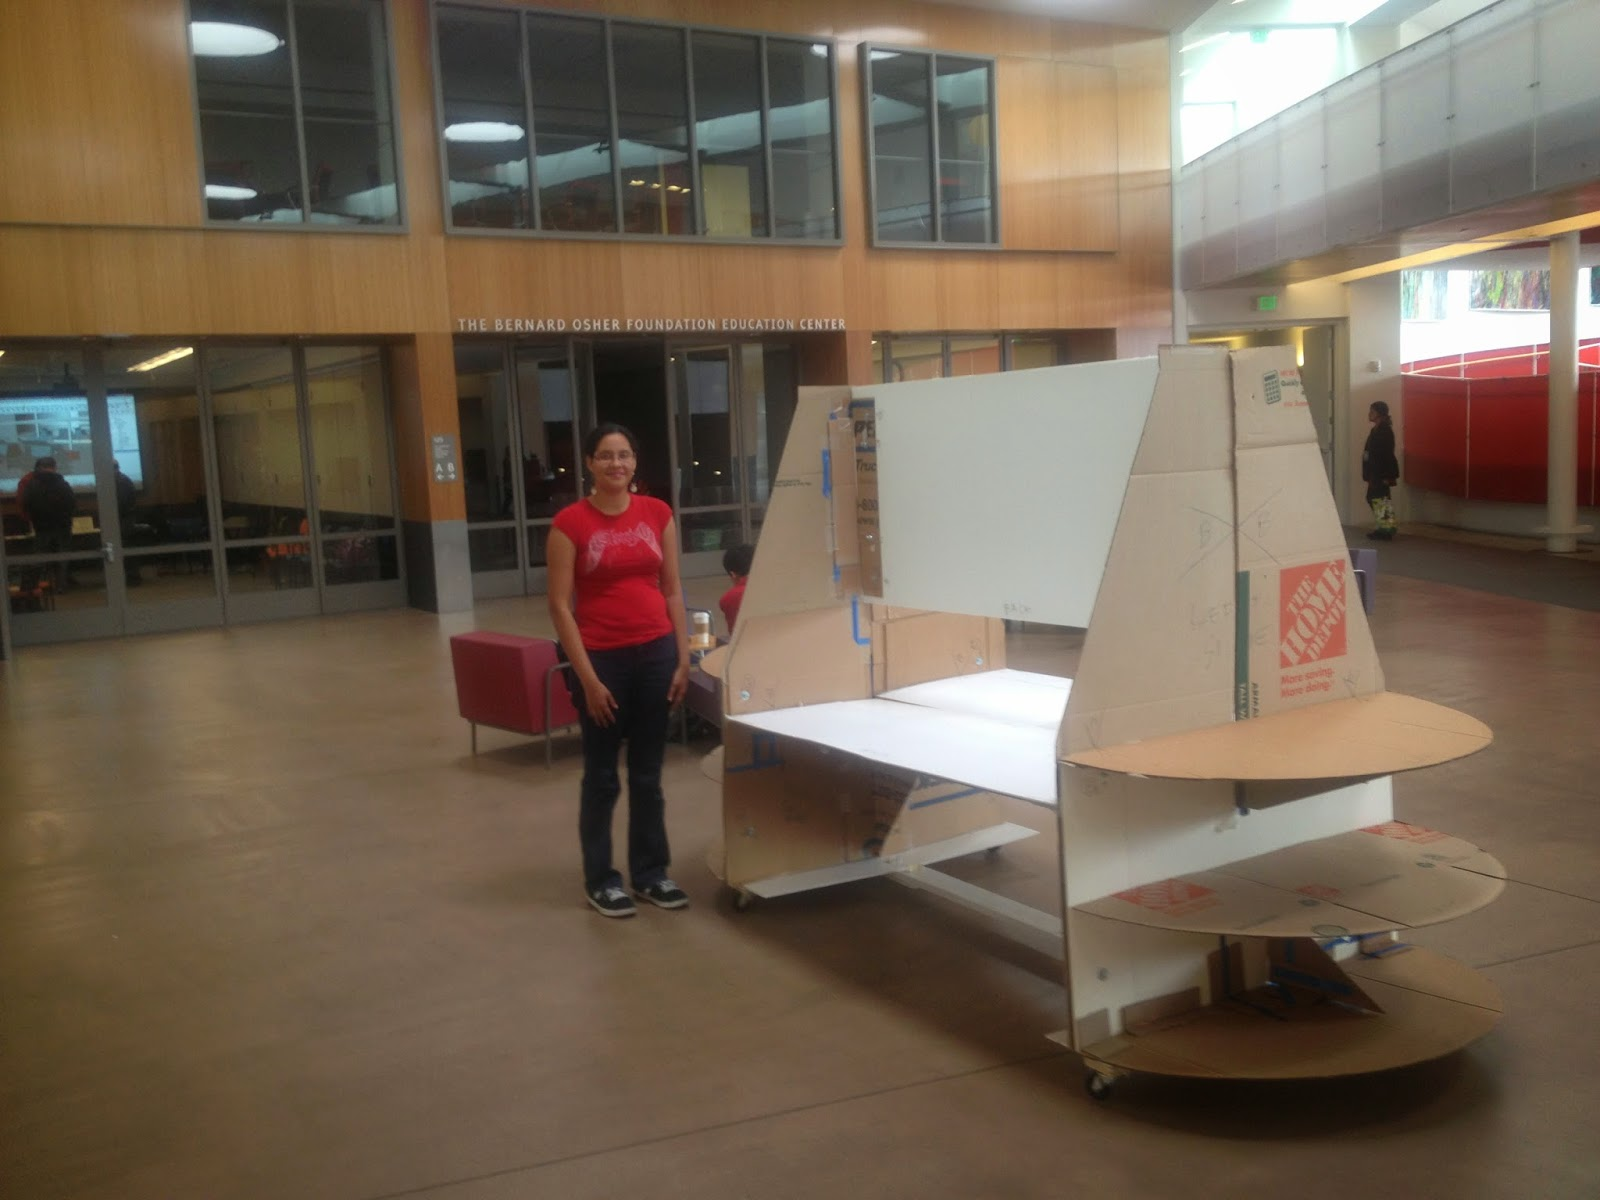 A student is standing to the right of the cardboard model within the Ed Roberts Building.